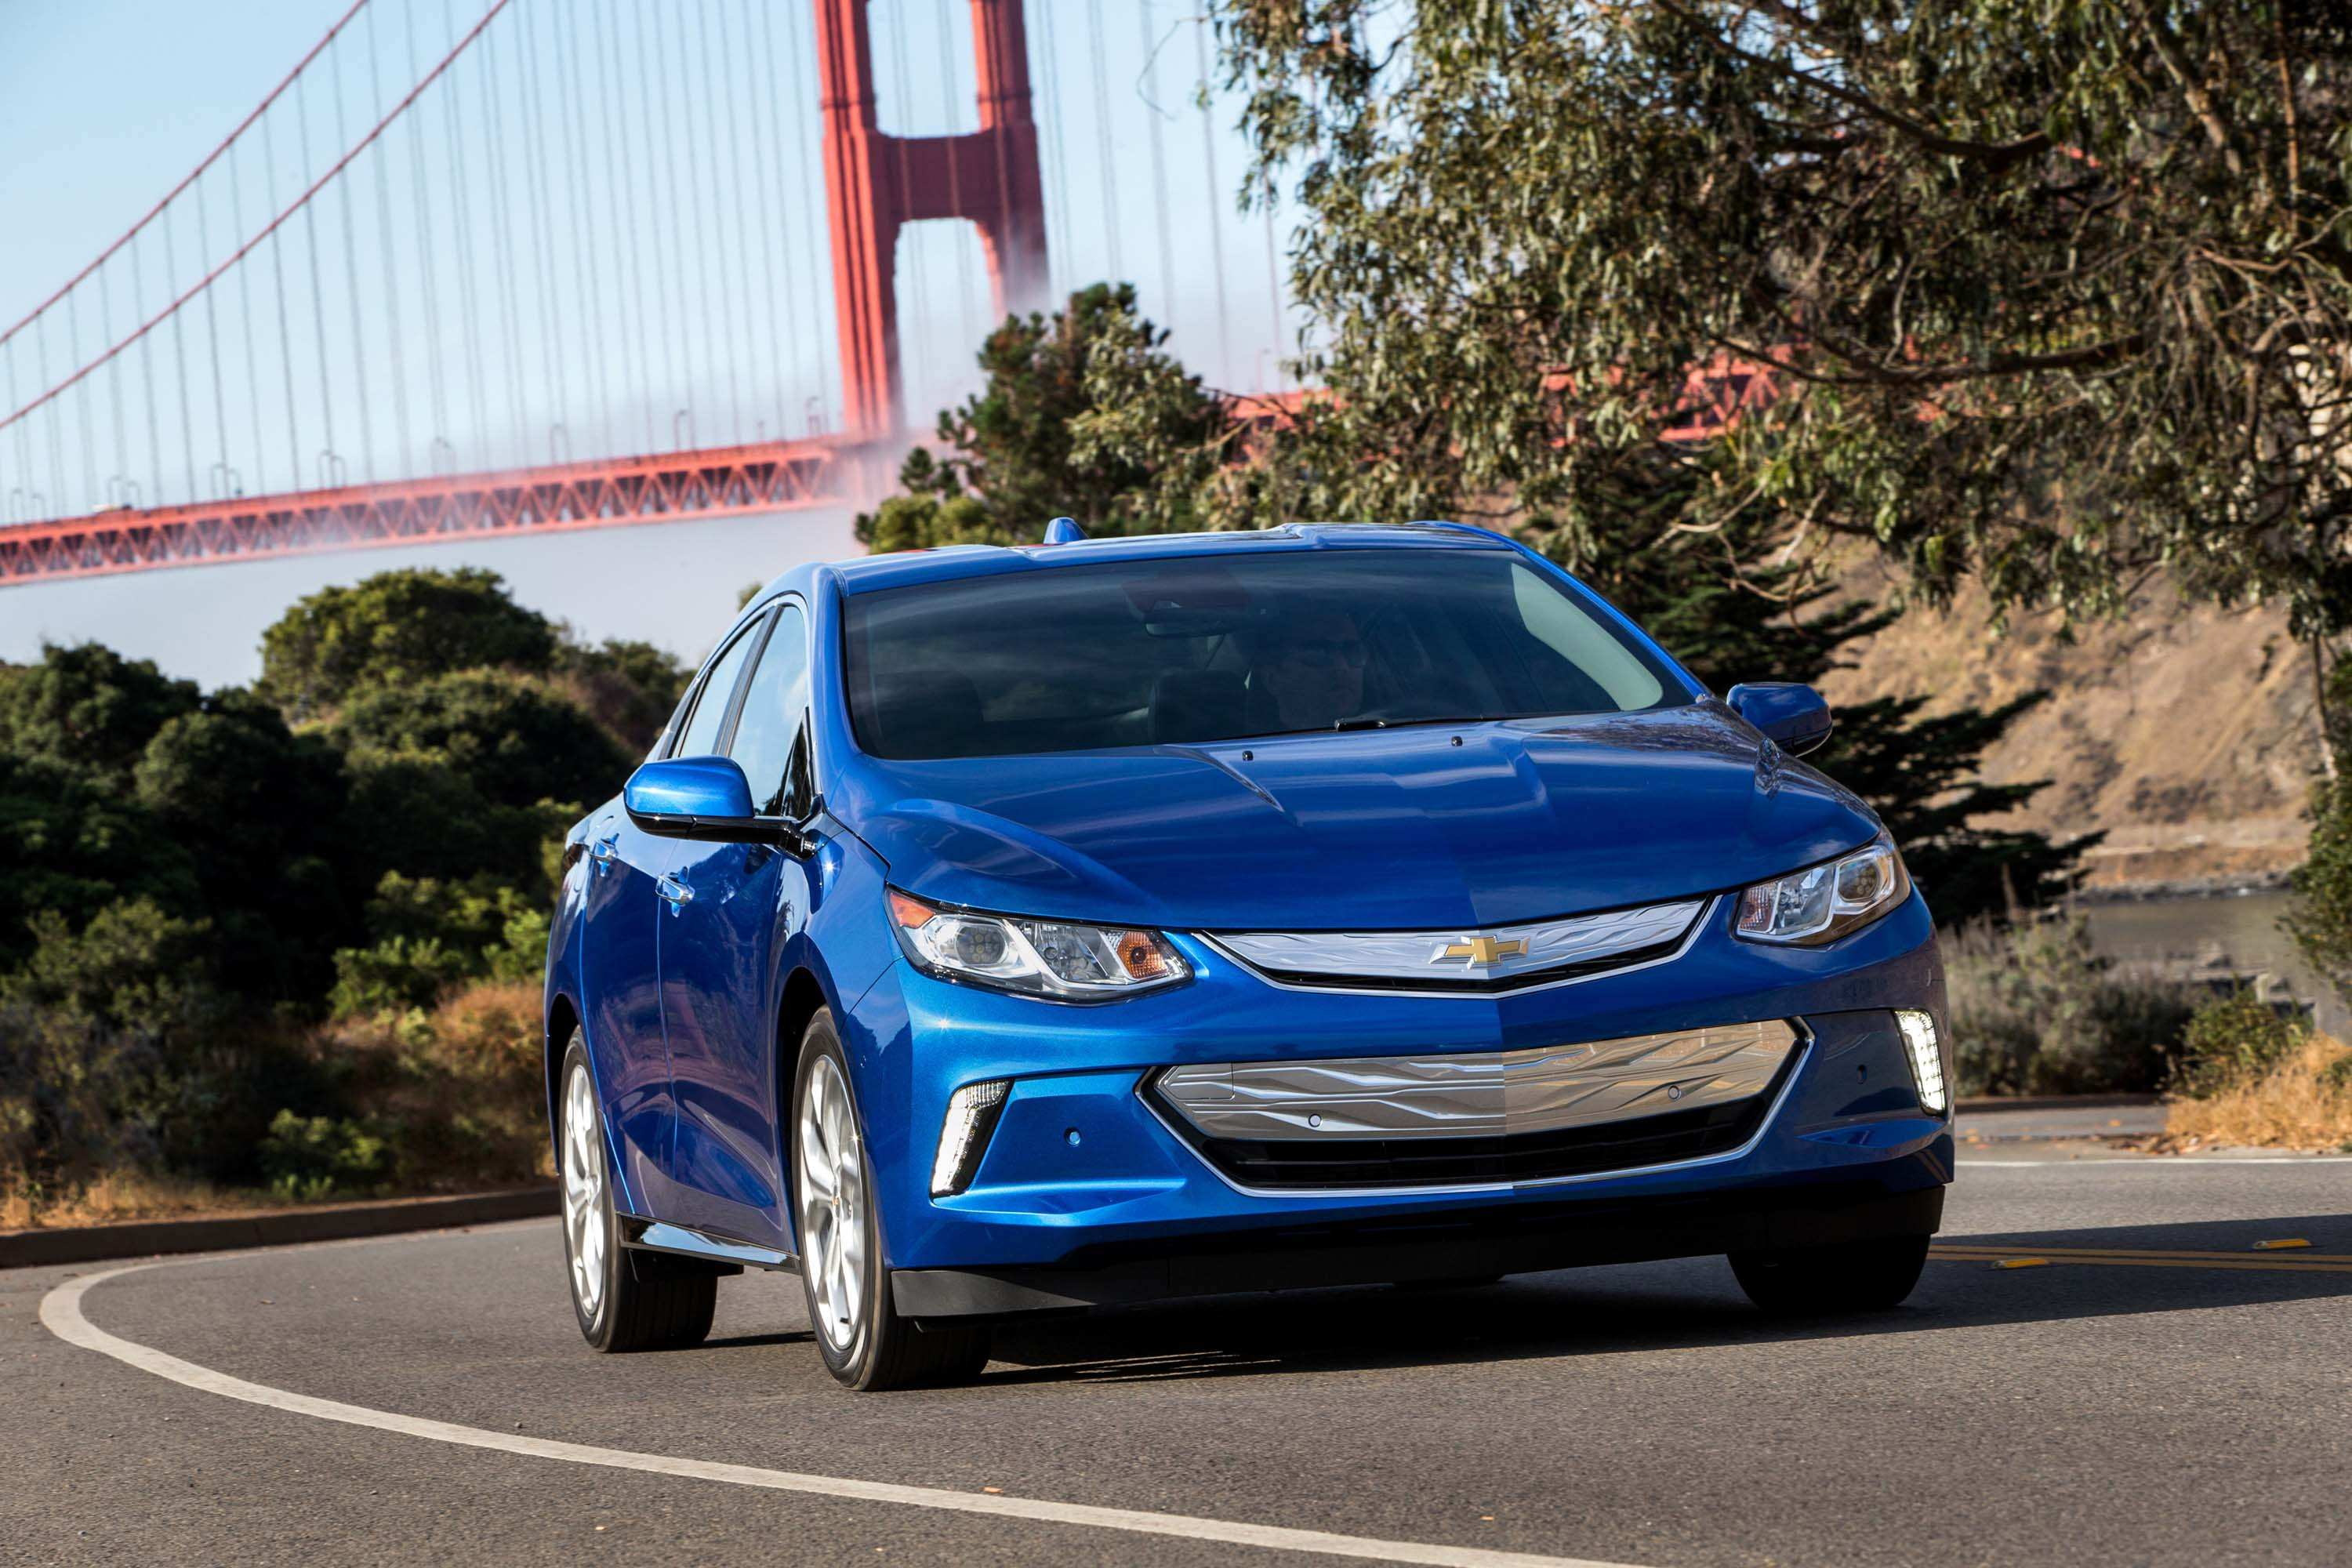 50 New 2019 Chevrolet Volt Pictures for 2019 Chevrolet Volt